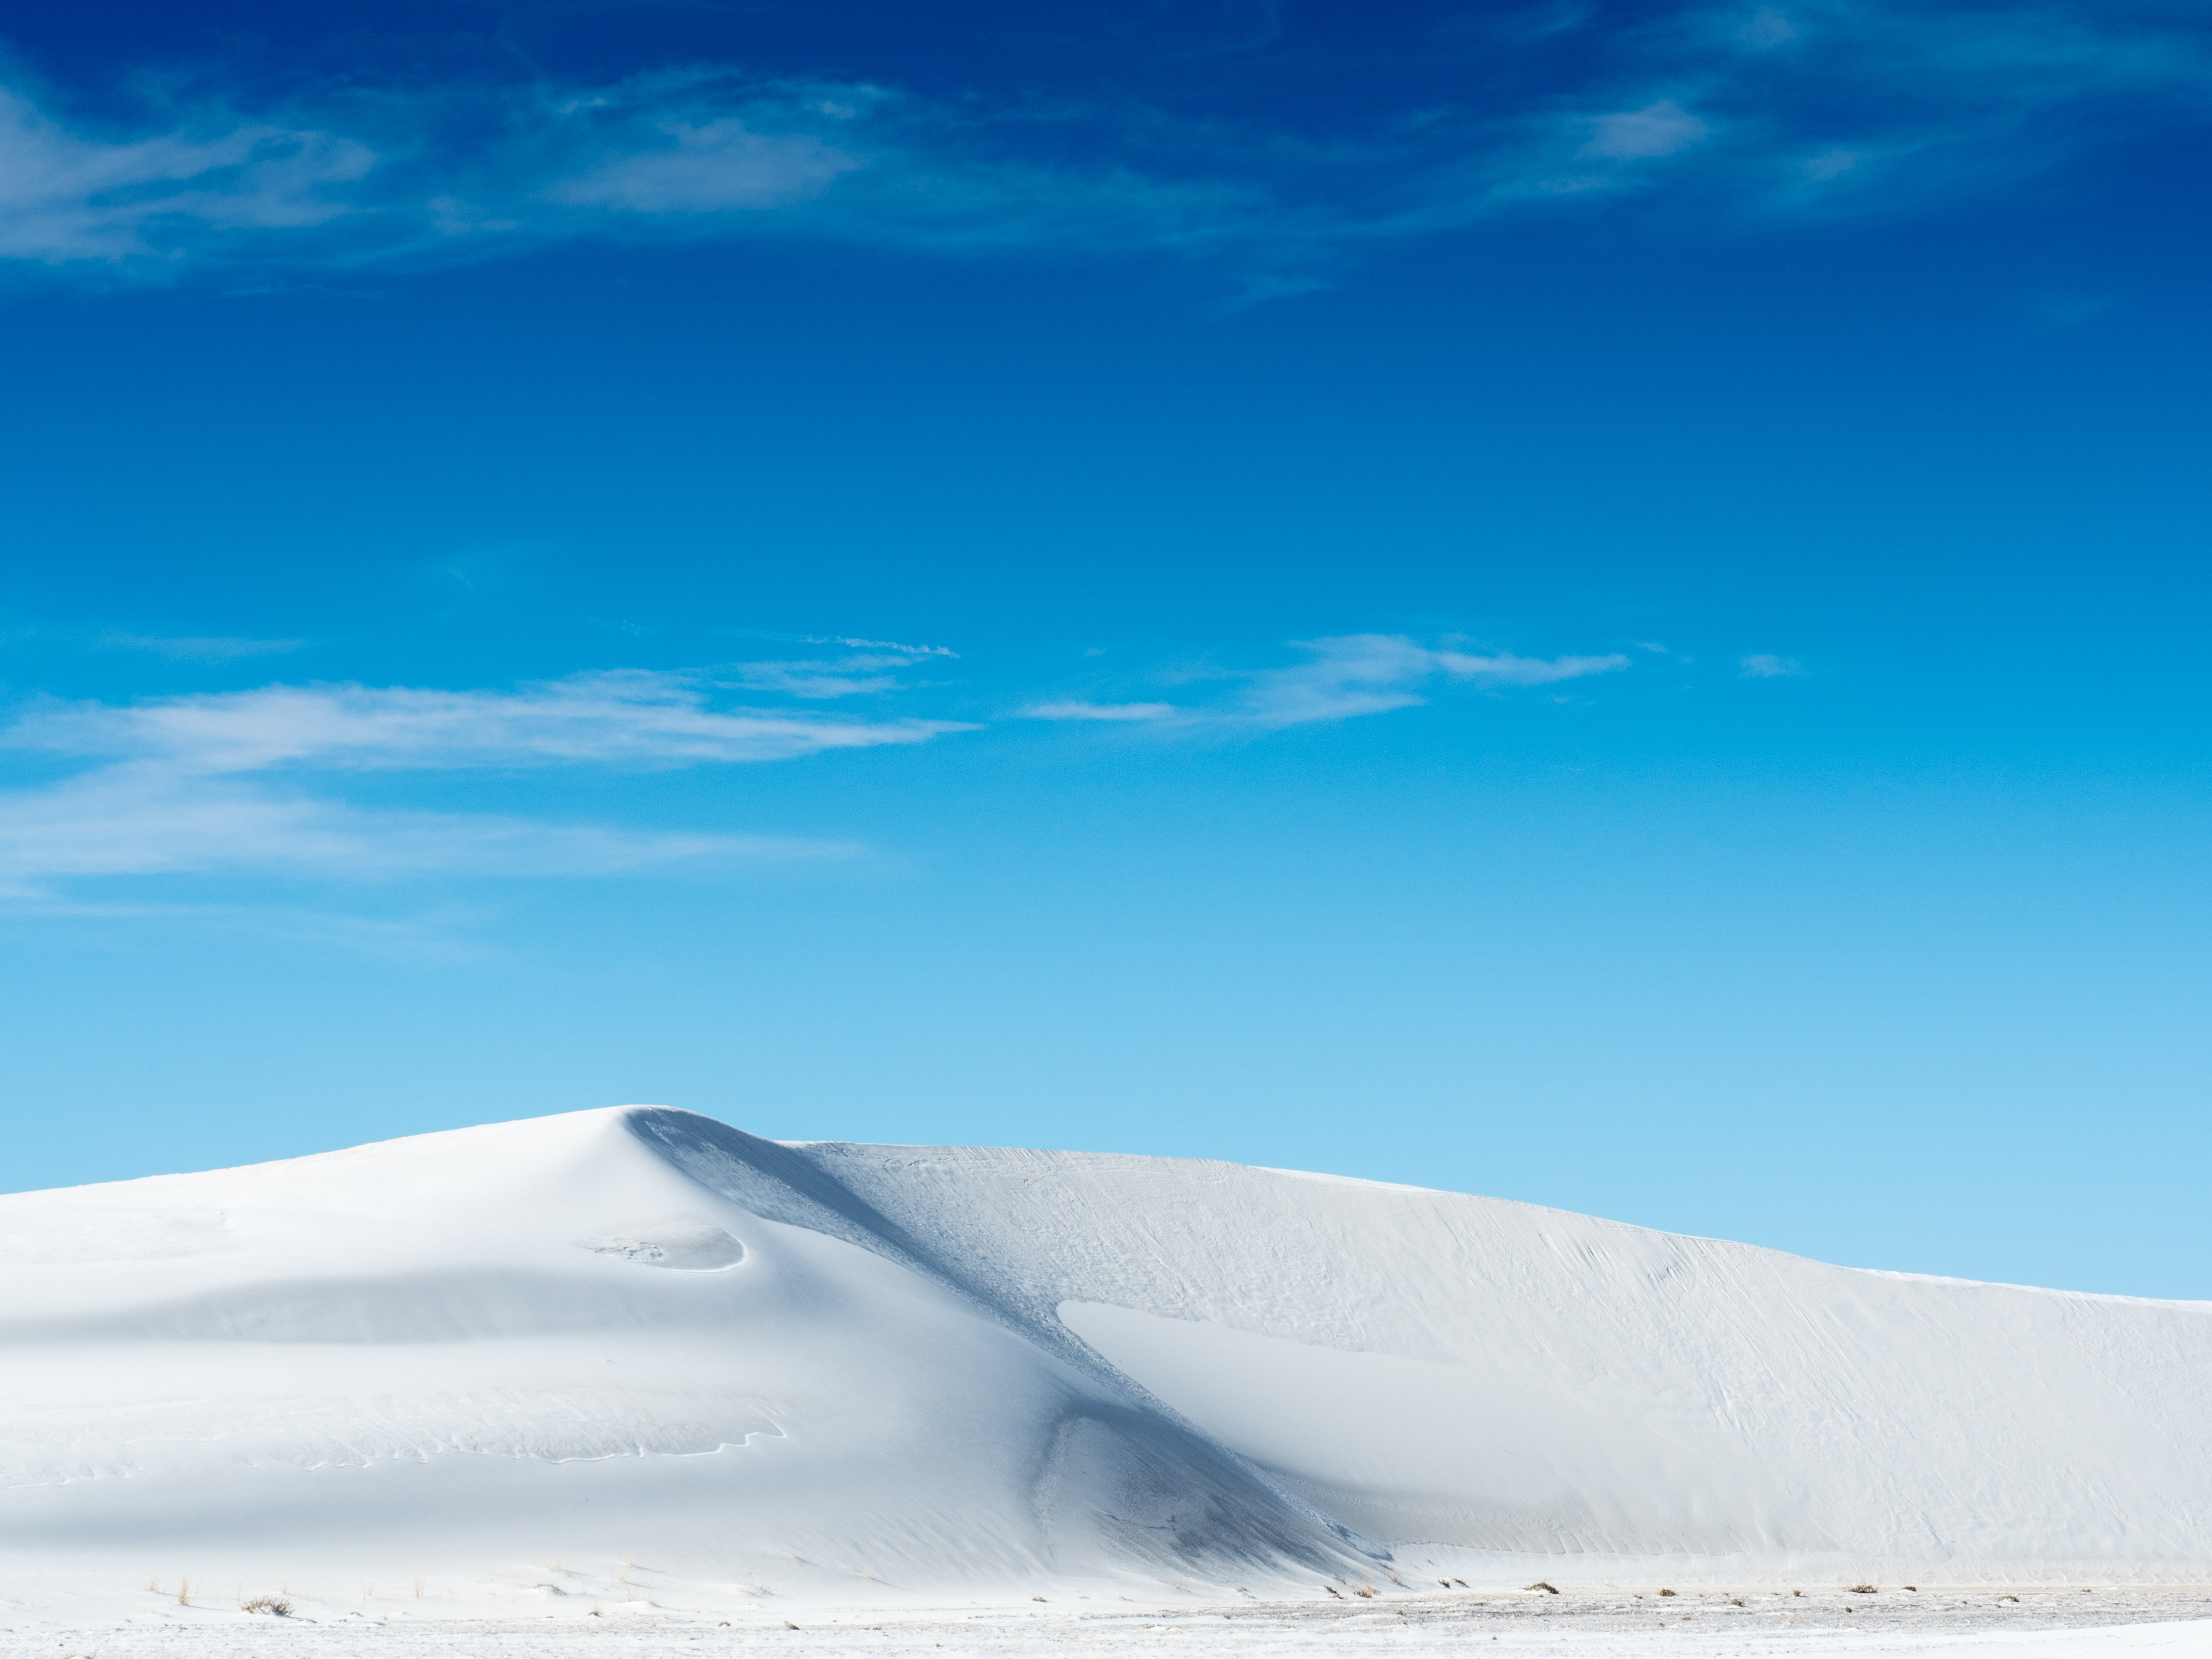 White dunes under the blue sky at White Sands National Monument.